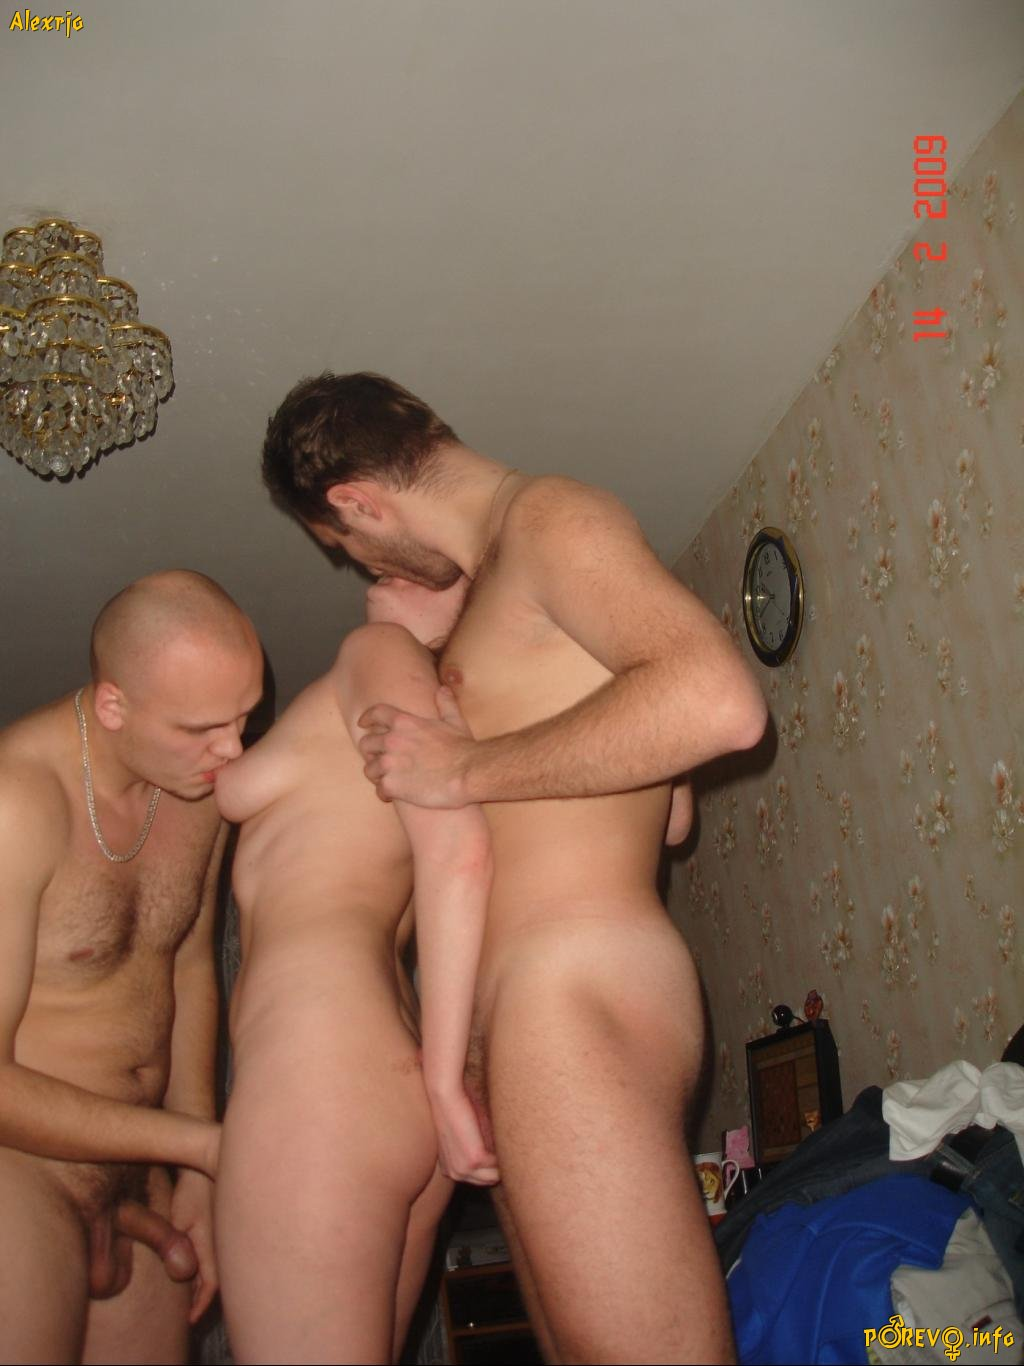 two women and one men doing nude fuck